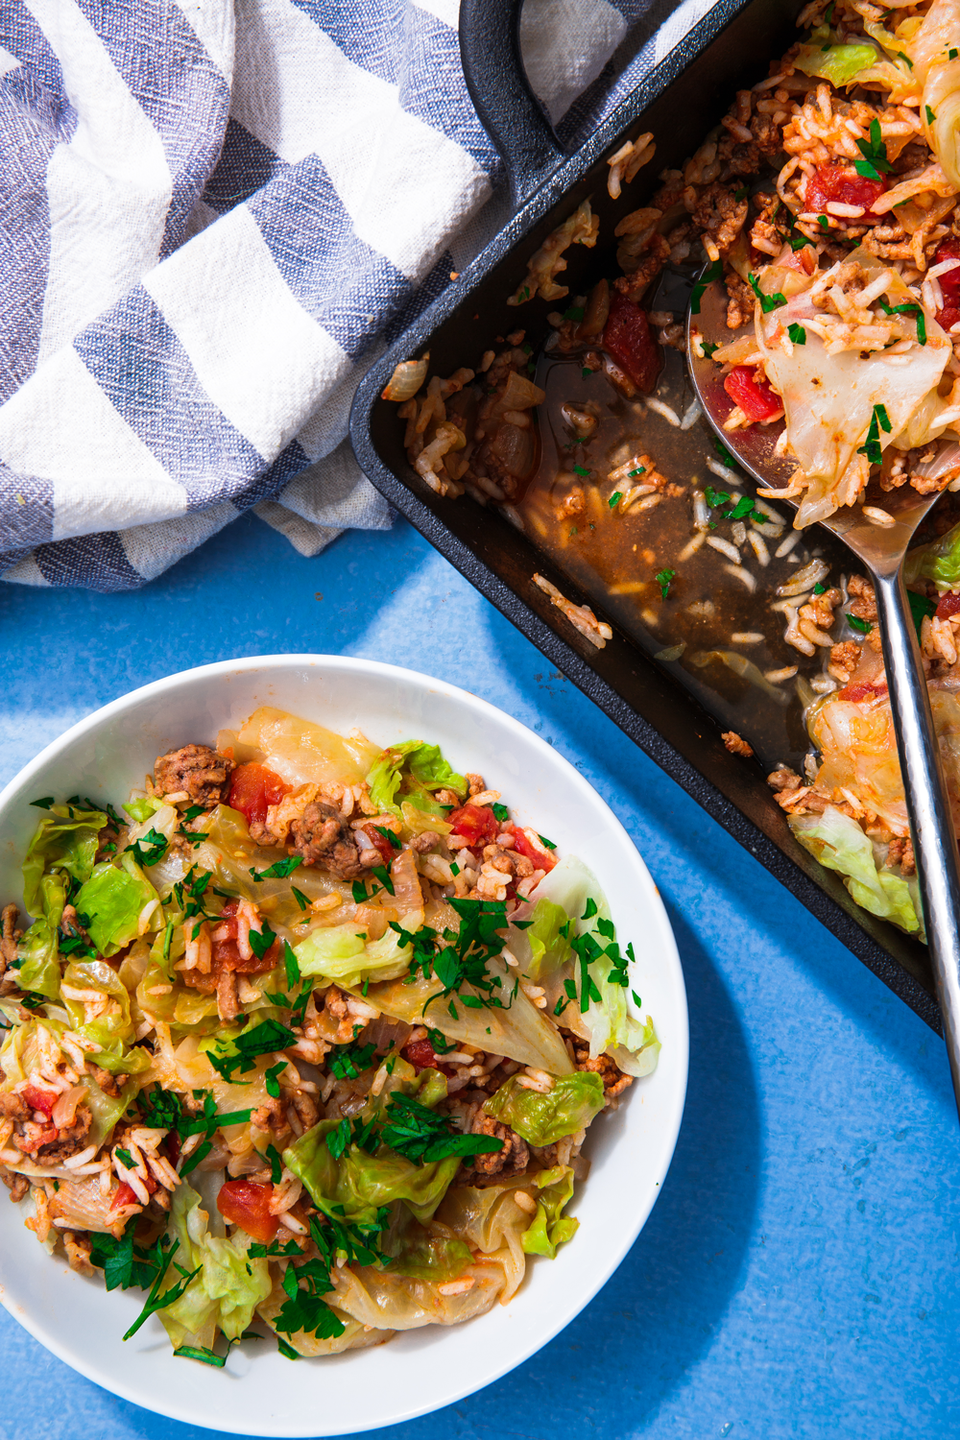 """<p>The best part: You don't even need to cook the rice beforehand!</p><p>Get the recipe from <a href=""""https://www.delish.com/cooking/recipe-ideas/a22804756/unstuffed-cabbage-casserole-recipe/"""" rel=""""nofollow noopener"""" target=""""_blank"""" data-ylk=""""slk:Delish"""" class=""""link rapid-noclick-resp"""">Delish</a>.</p>"""